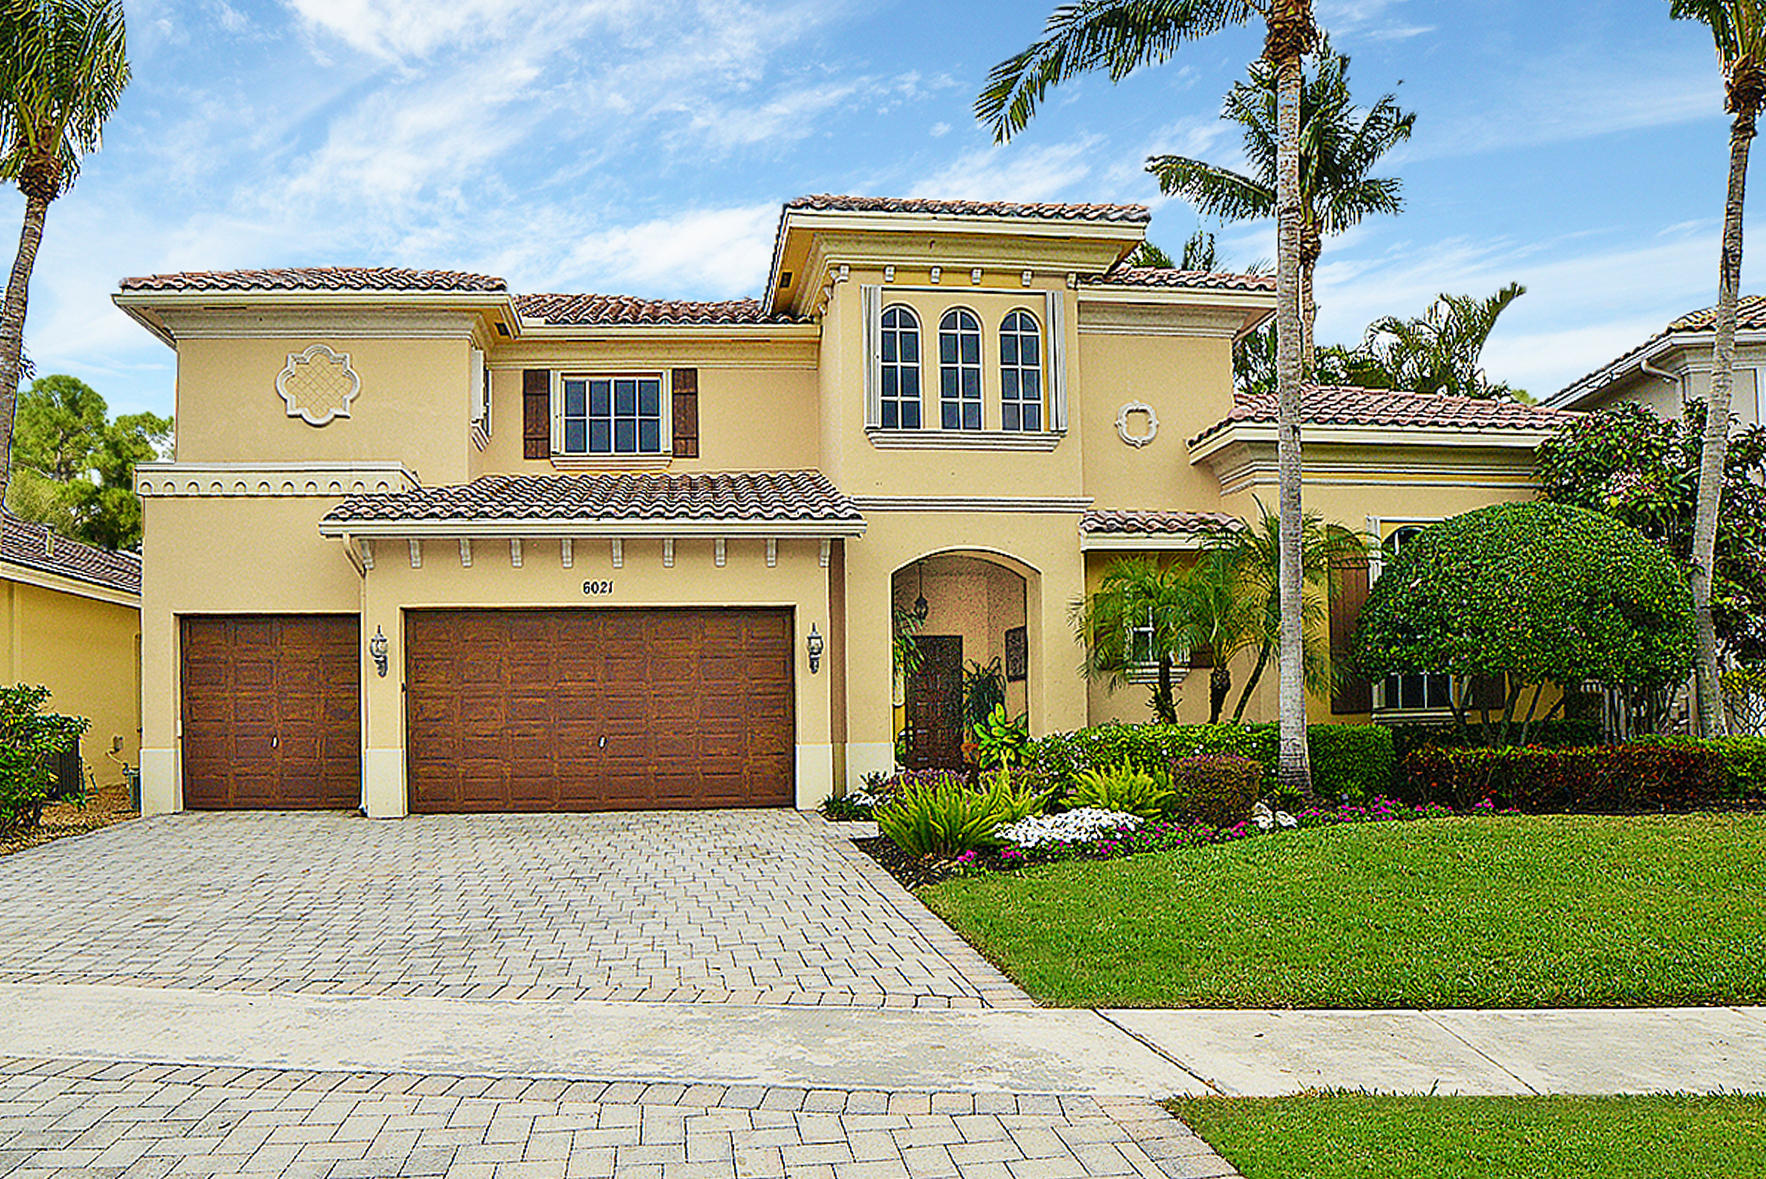 6021 ViA Venetia  Delray Beach, FL 33484